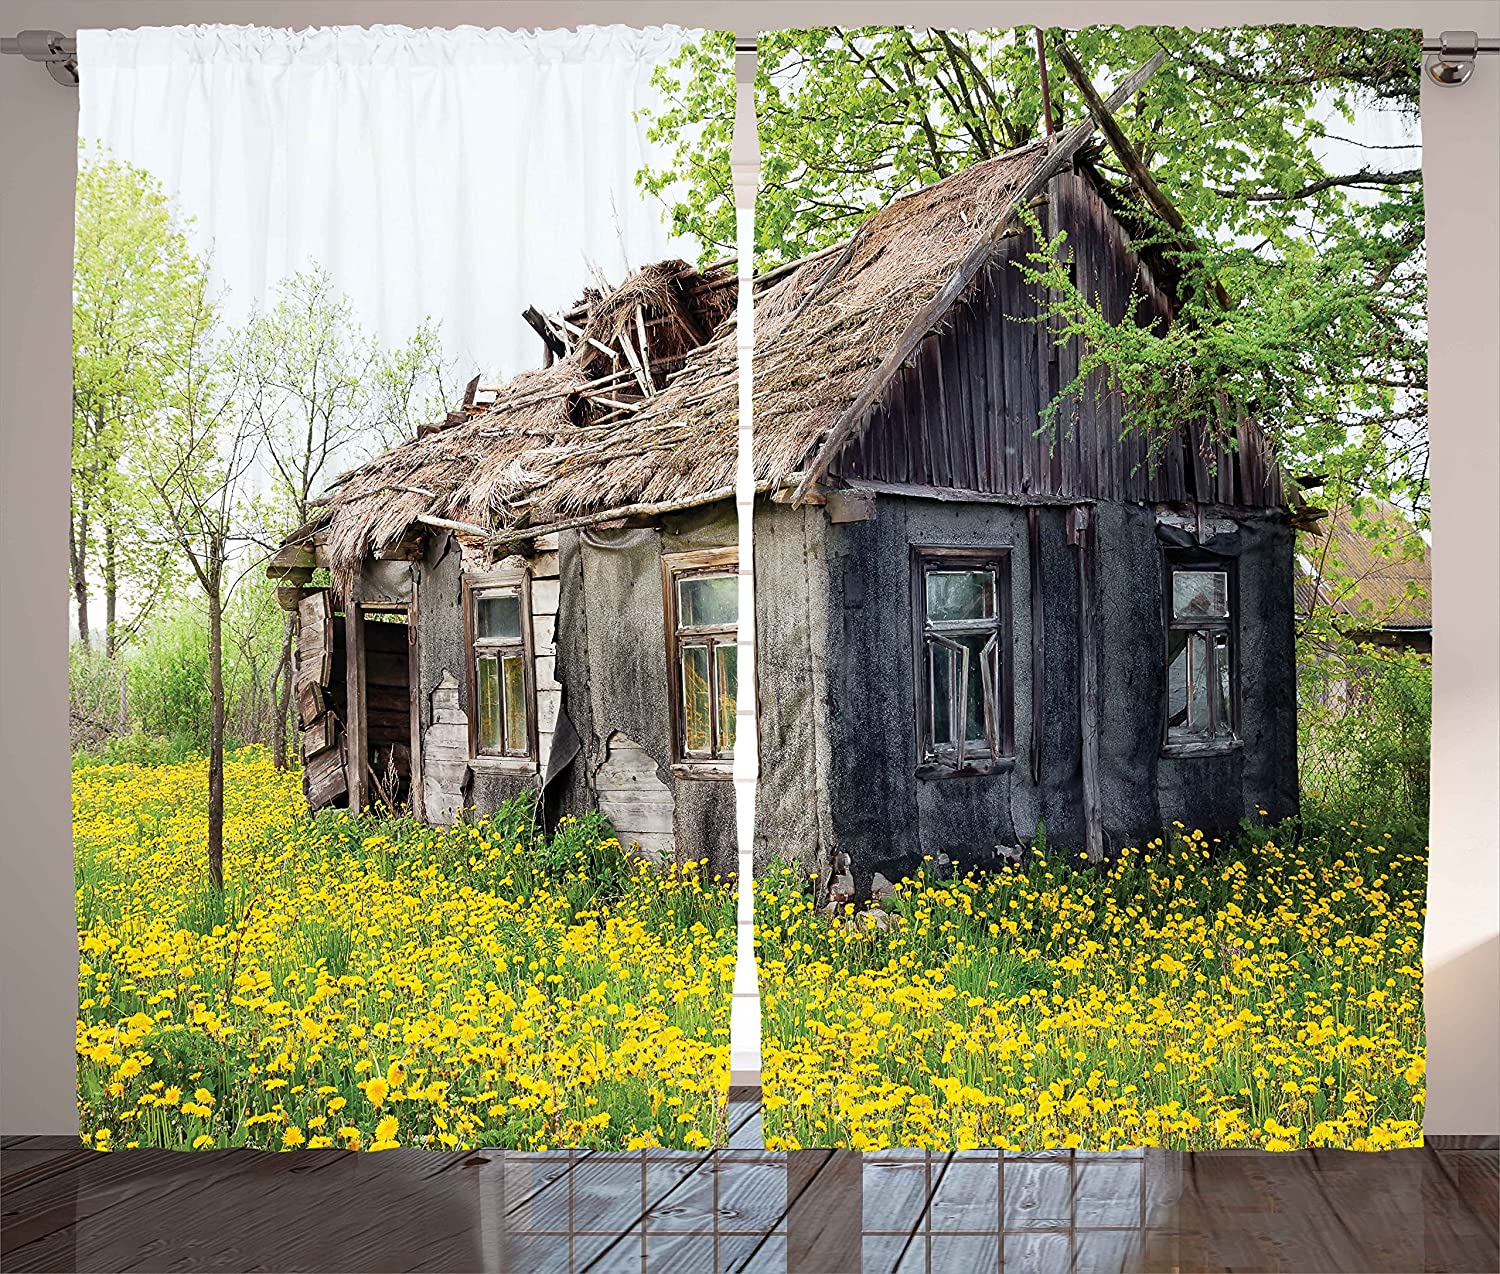 Old Barn Farmhouse Countryside Cottage House in Garden Rural Vintage Picture Ambesonne Wooden Decor Curtains 108W X 63L Inches Brown Green Living Room Bedroom Window Drapes 2 Panel Set